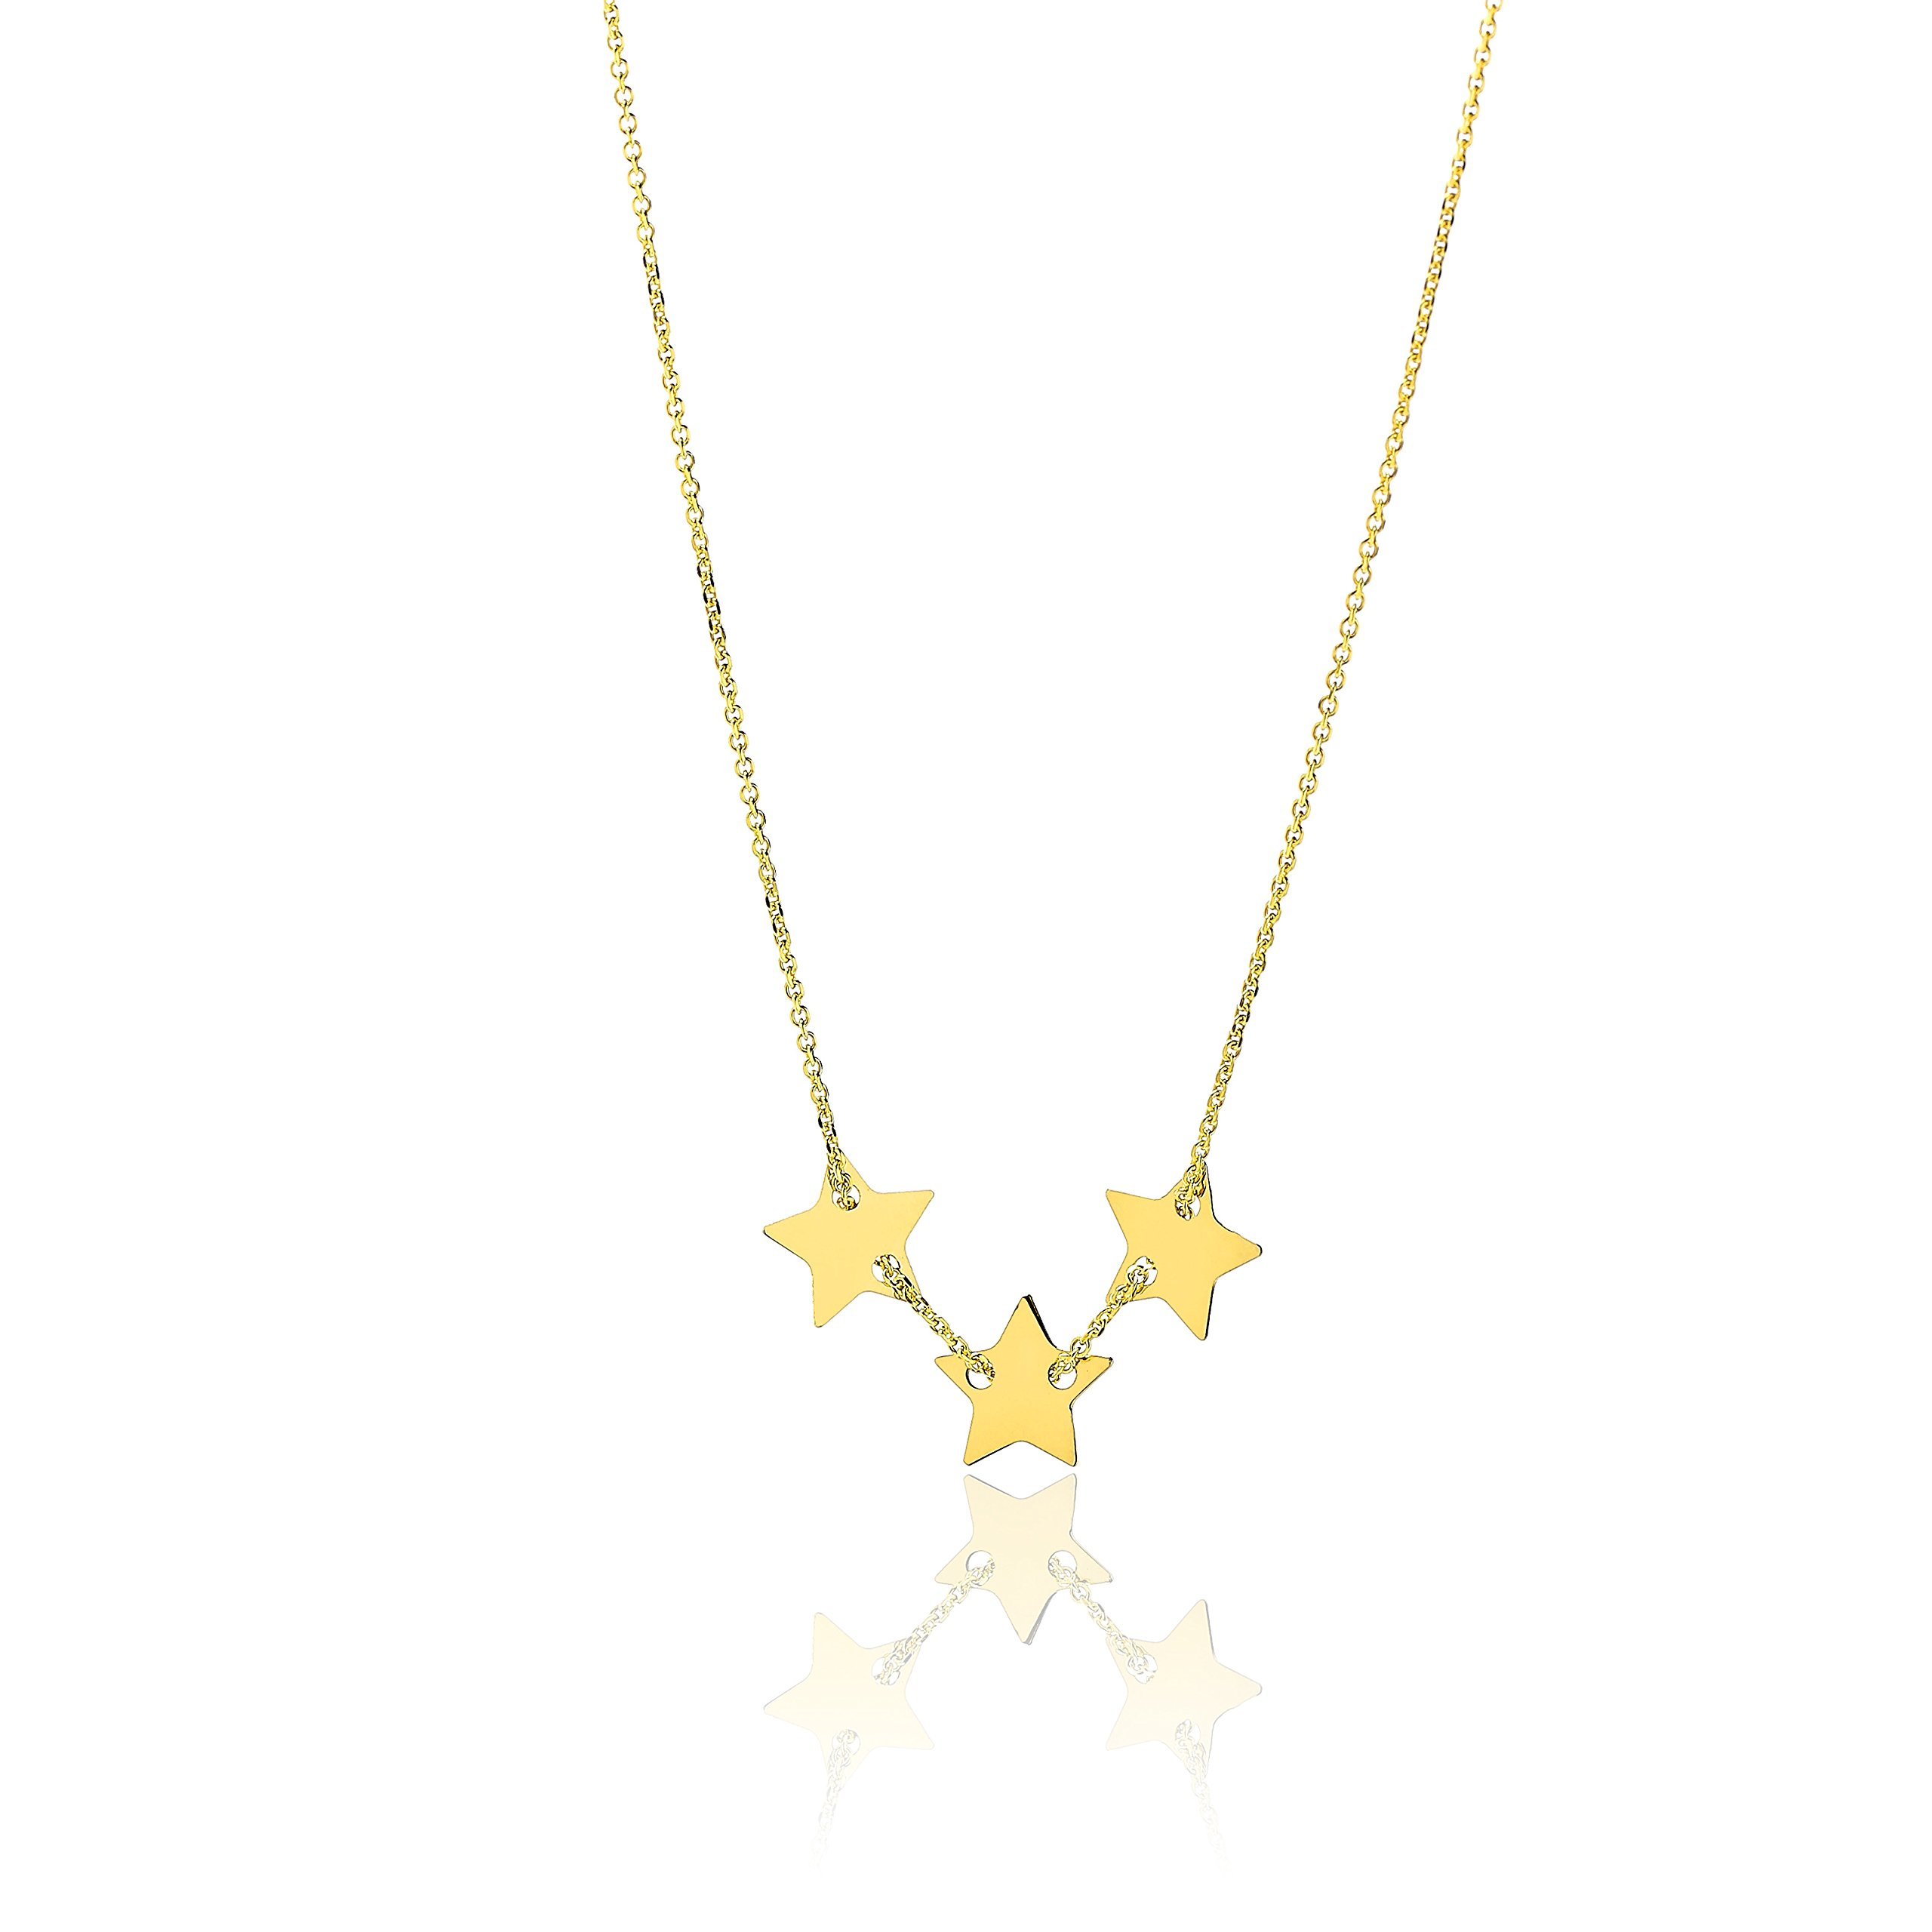 14k Yellow Gold Thin Dainty Necklace with Small Adjustable Star Charm, 18 Inch (17'' + 1'' Extender)